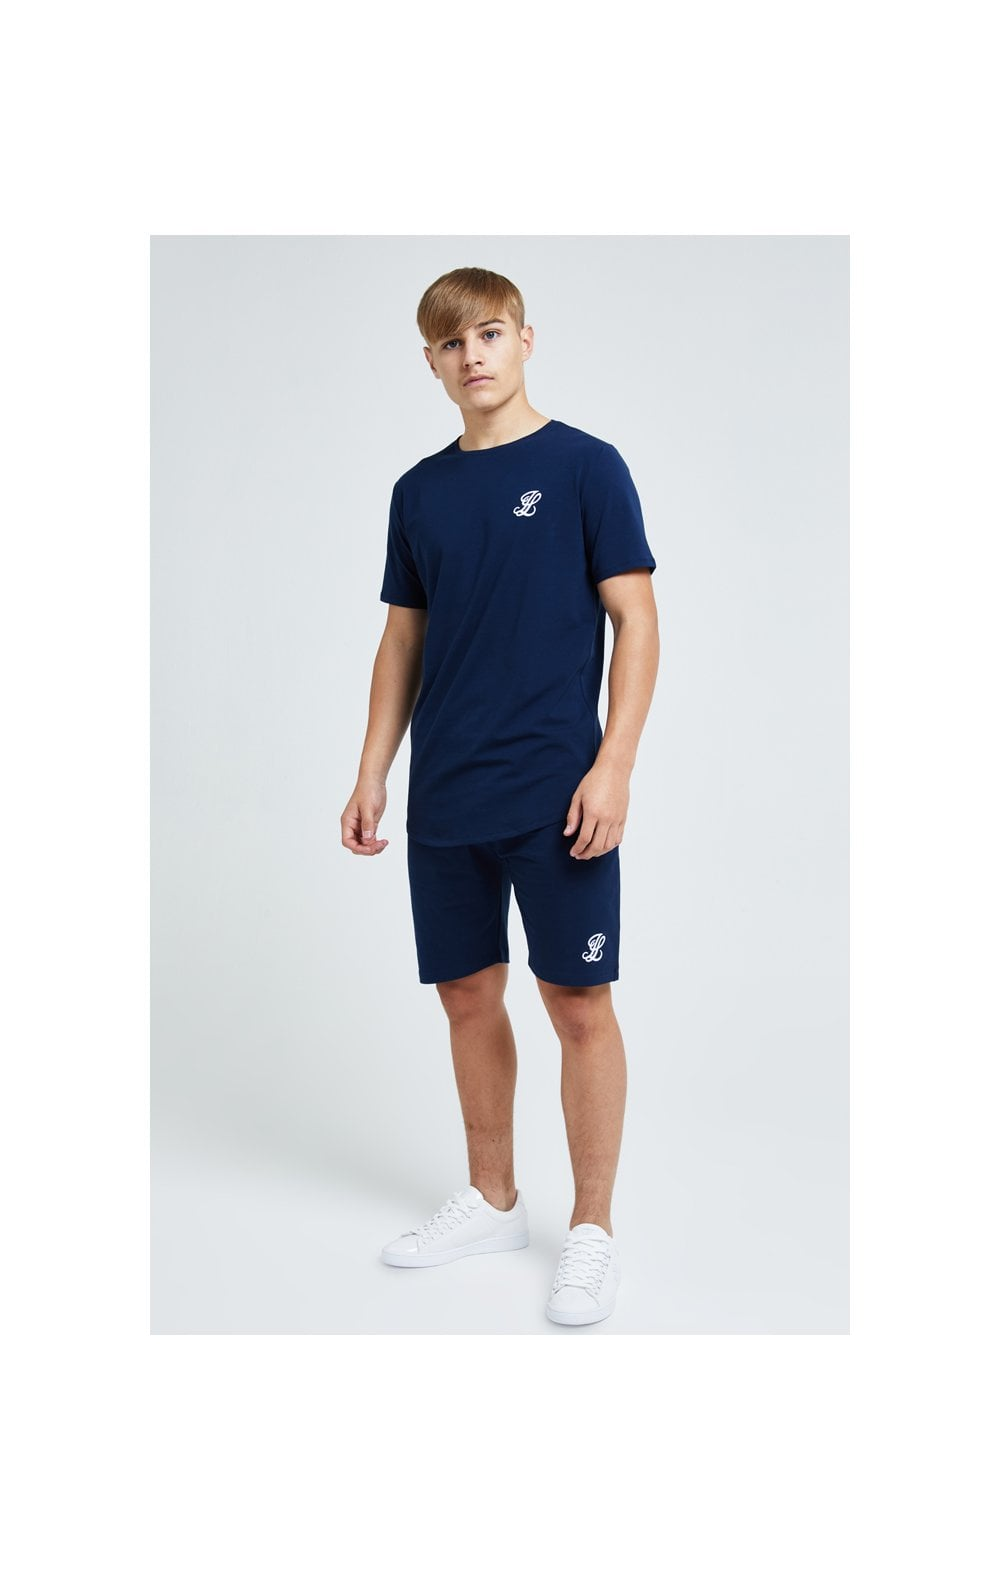 Load image into Gallery viewer, Illusive London Core Tee - Navy (3)